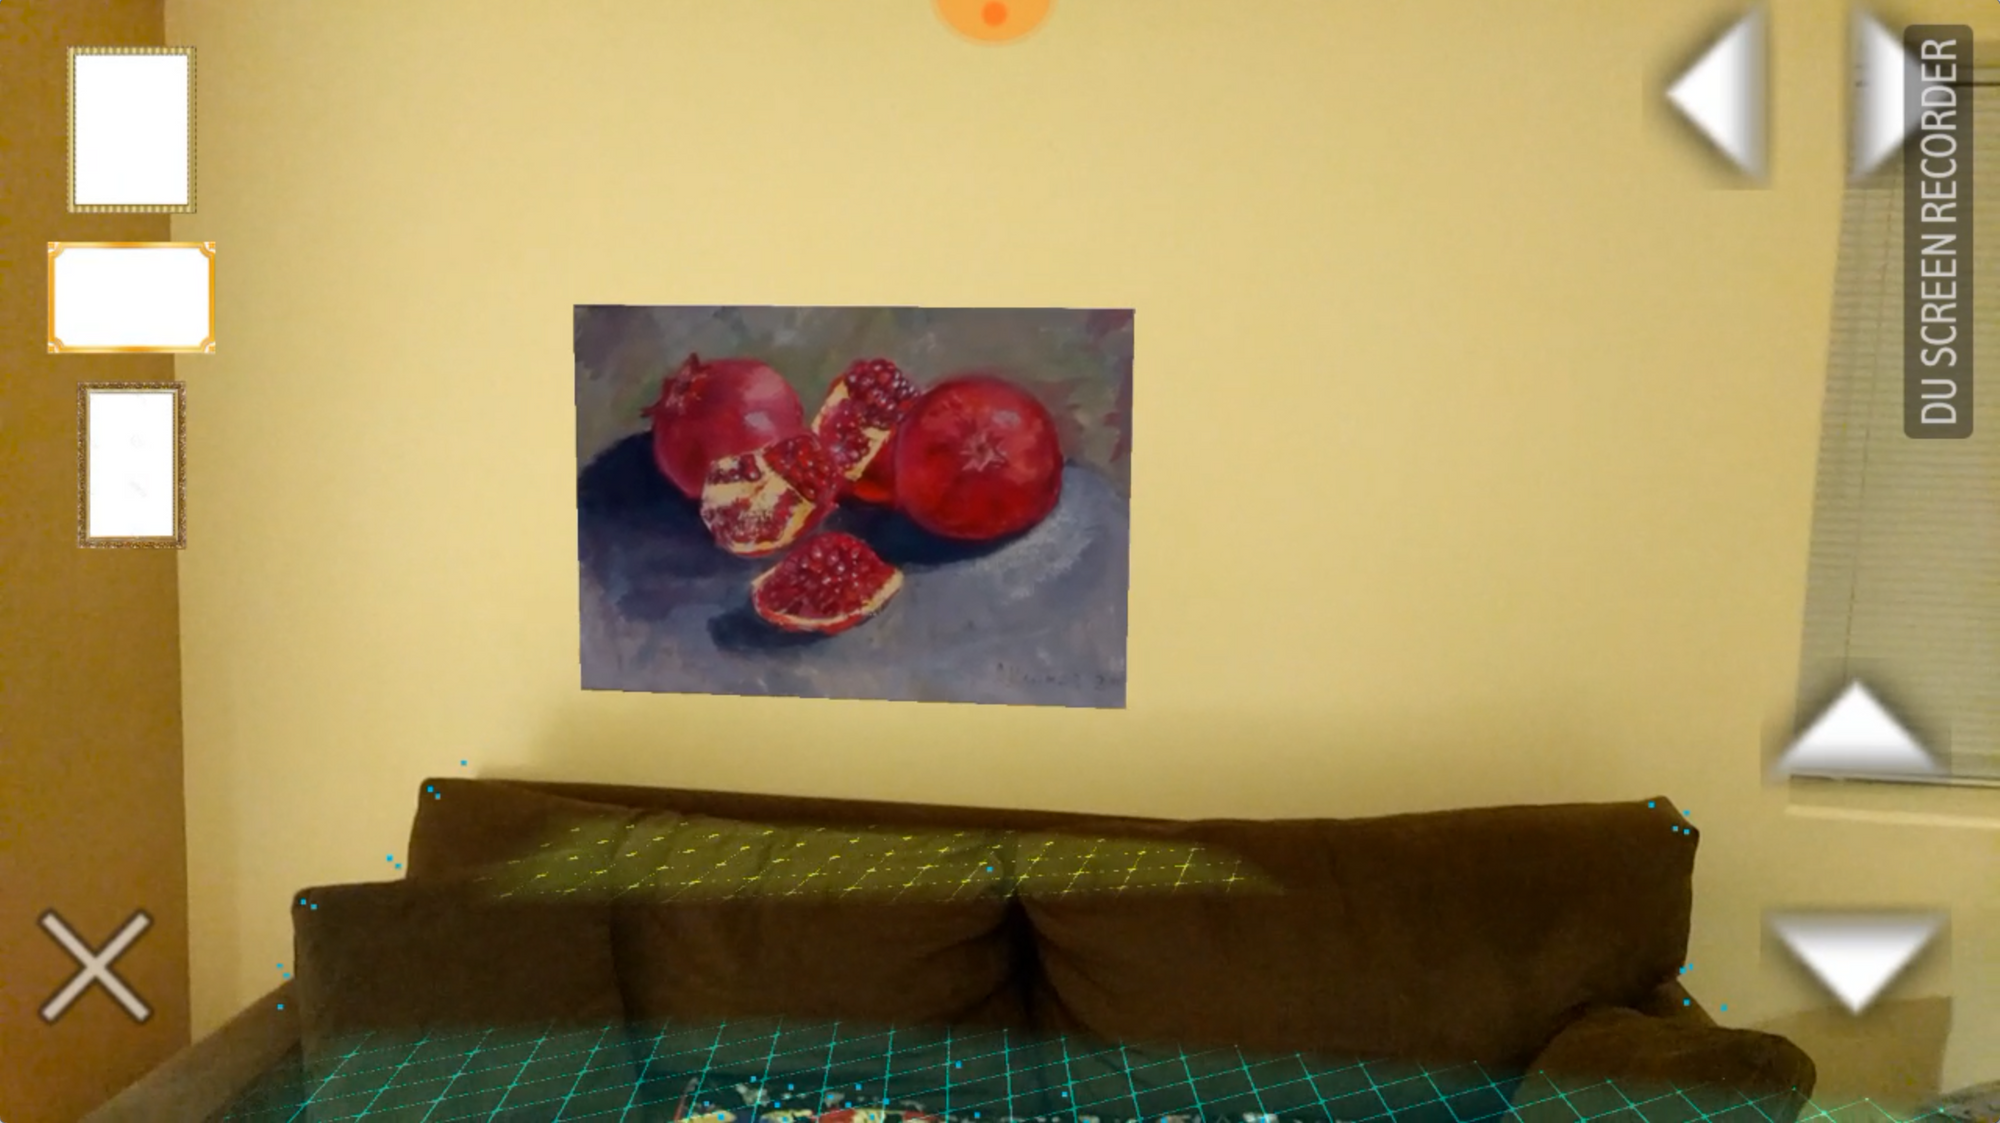 Example of Agumented reality: adjusting the picture on the wall